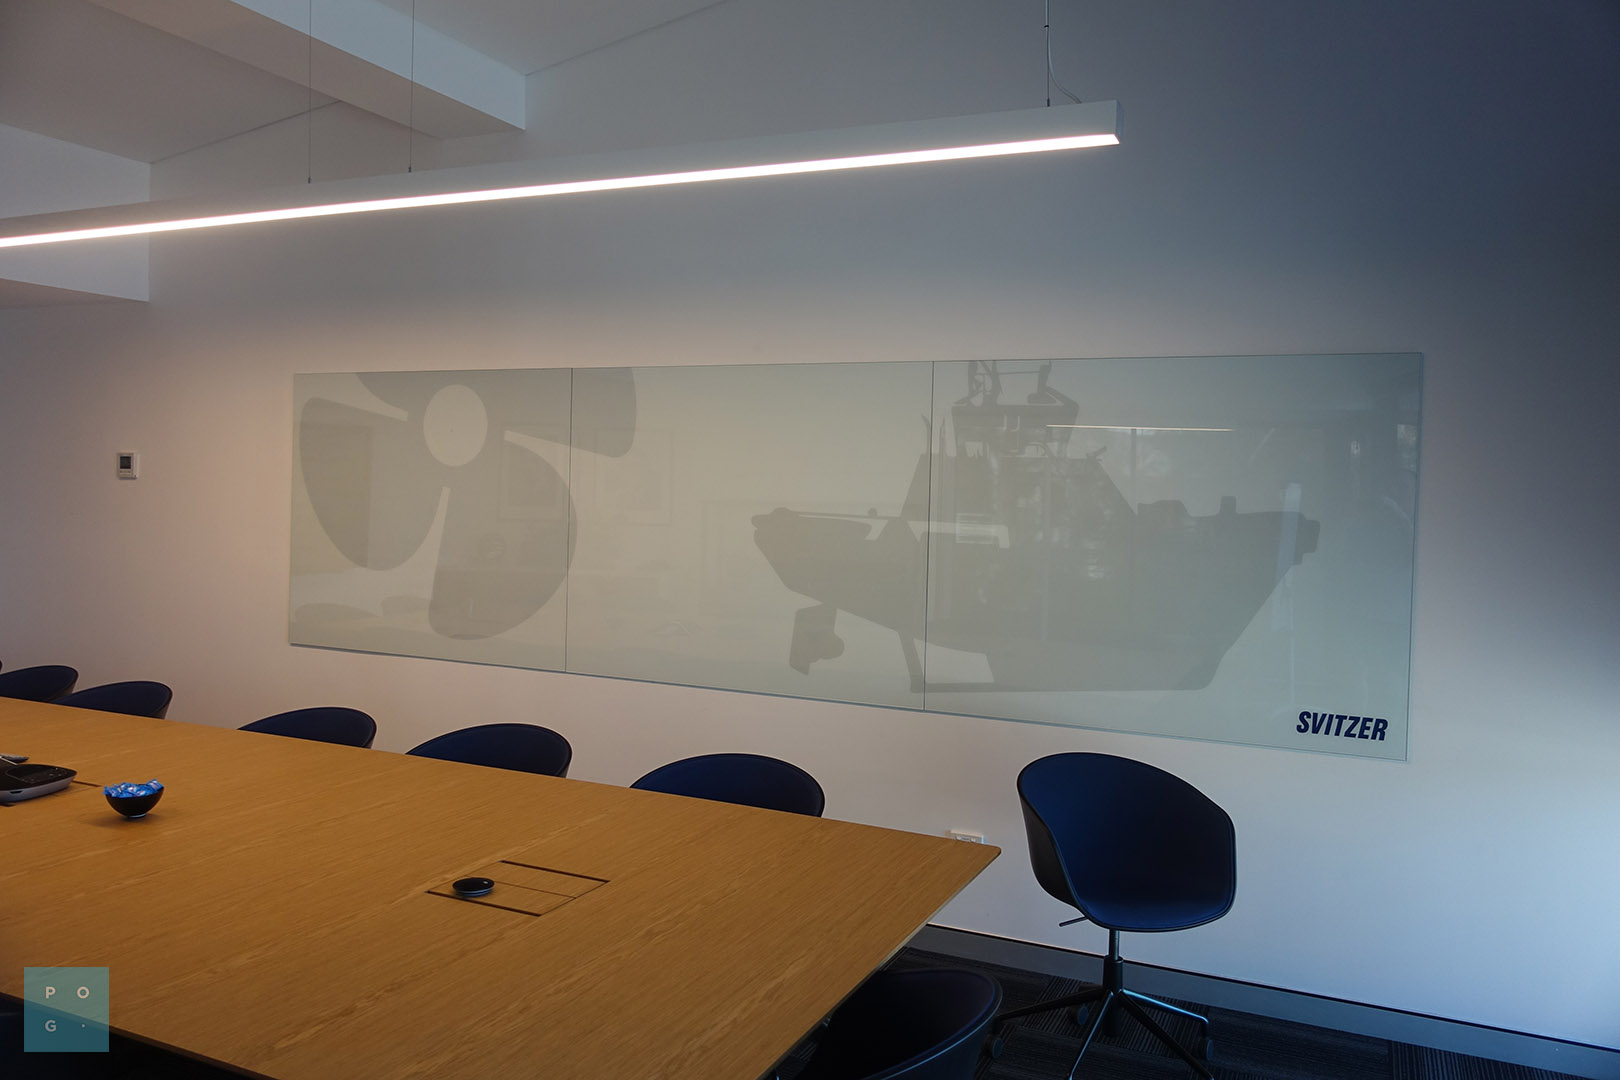 Boardroom with a large, three panel glass wall print with tugboat imagery on the wall.